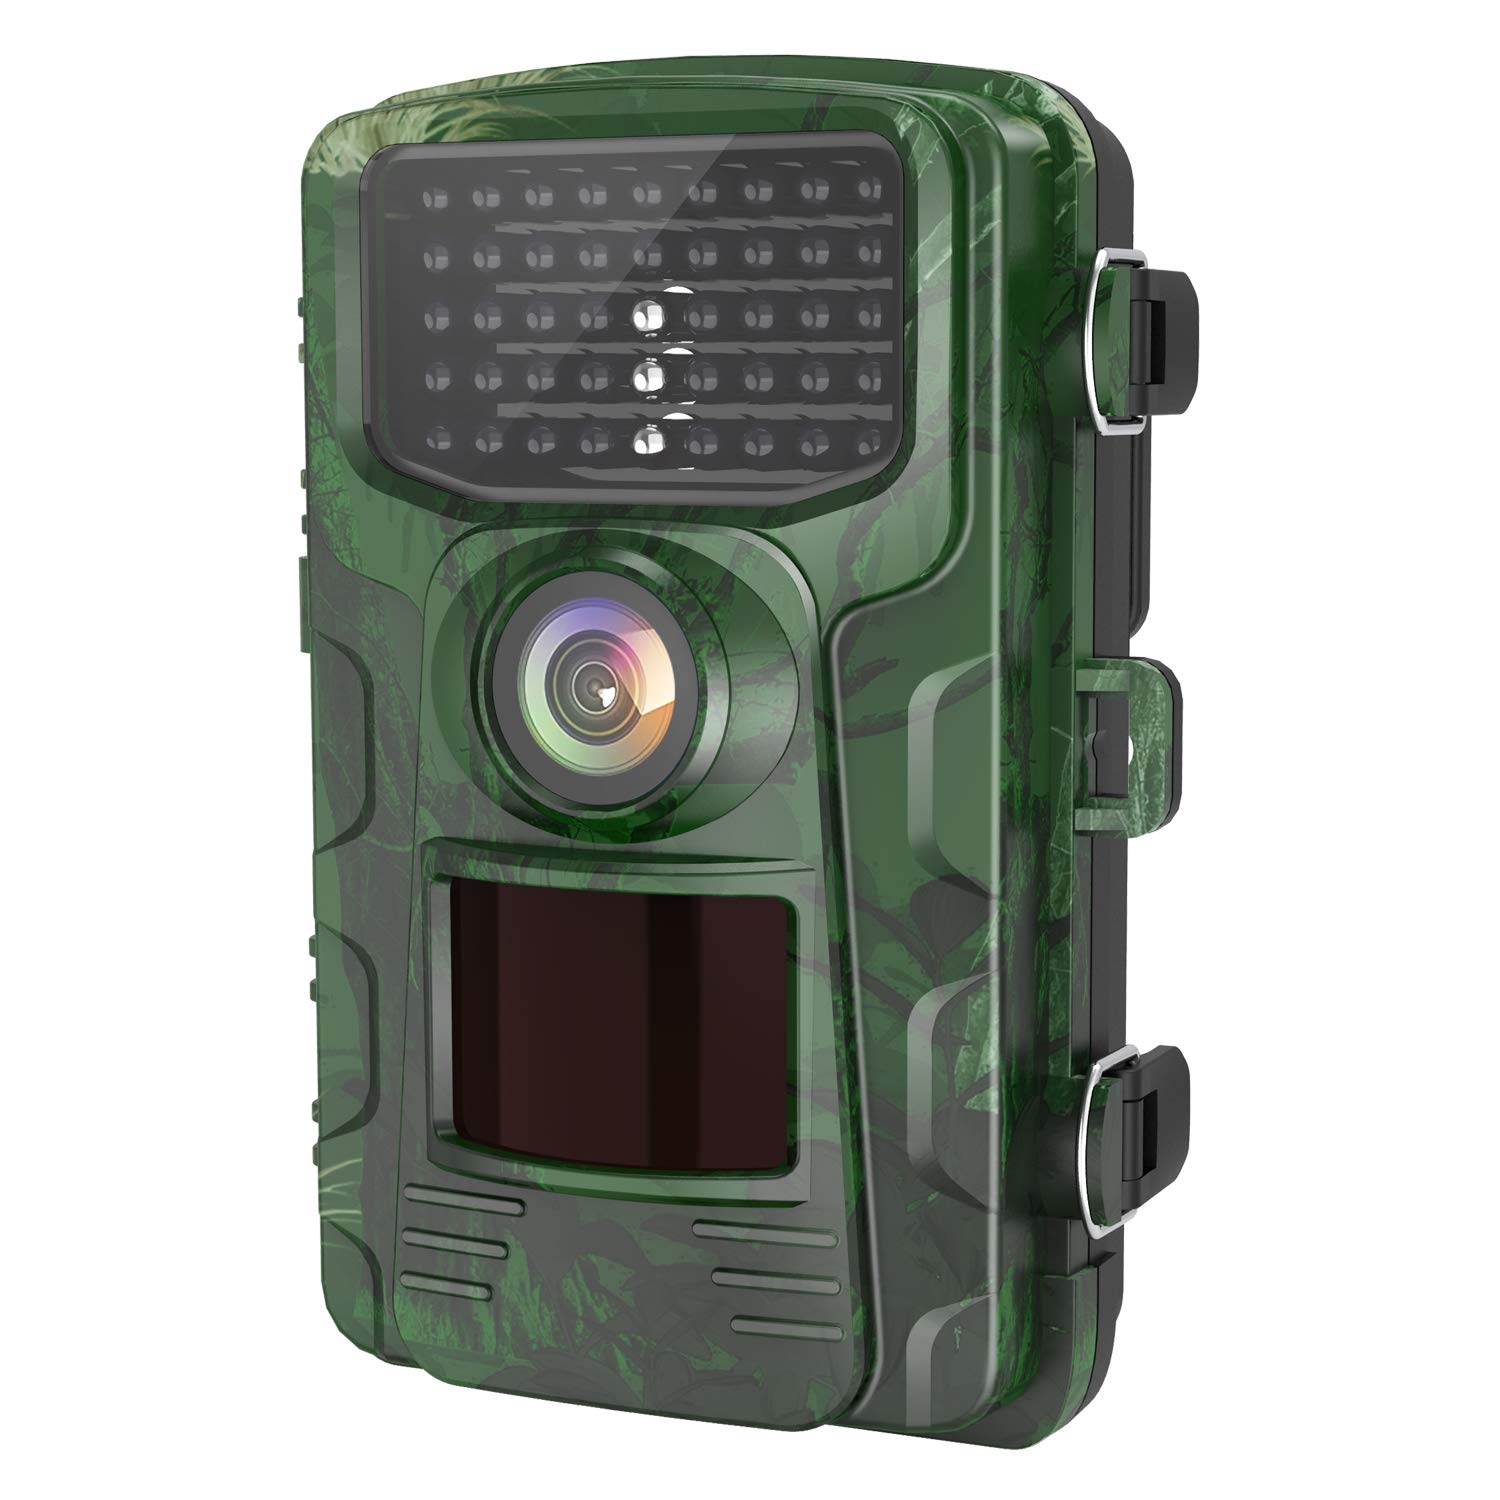 LETSCOM Trail Game Camera 14MP, IP65 Waterproof Wildlife Scouting Hunting Cams, 0.4s Trigger Speed, 42 Low Glow IR LEDs, 120° Wide Angle (Green)